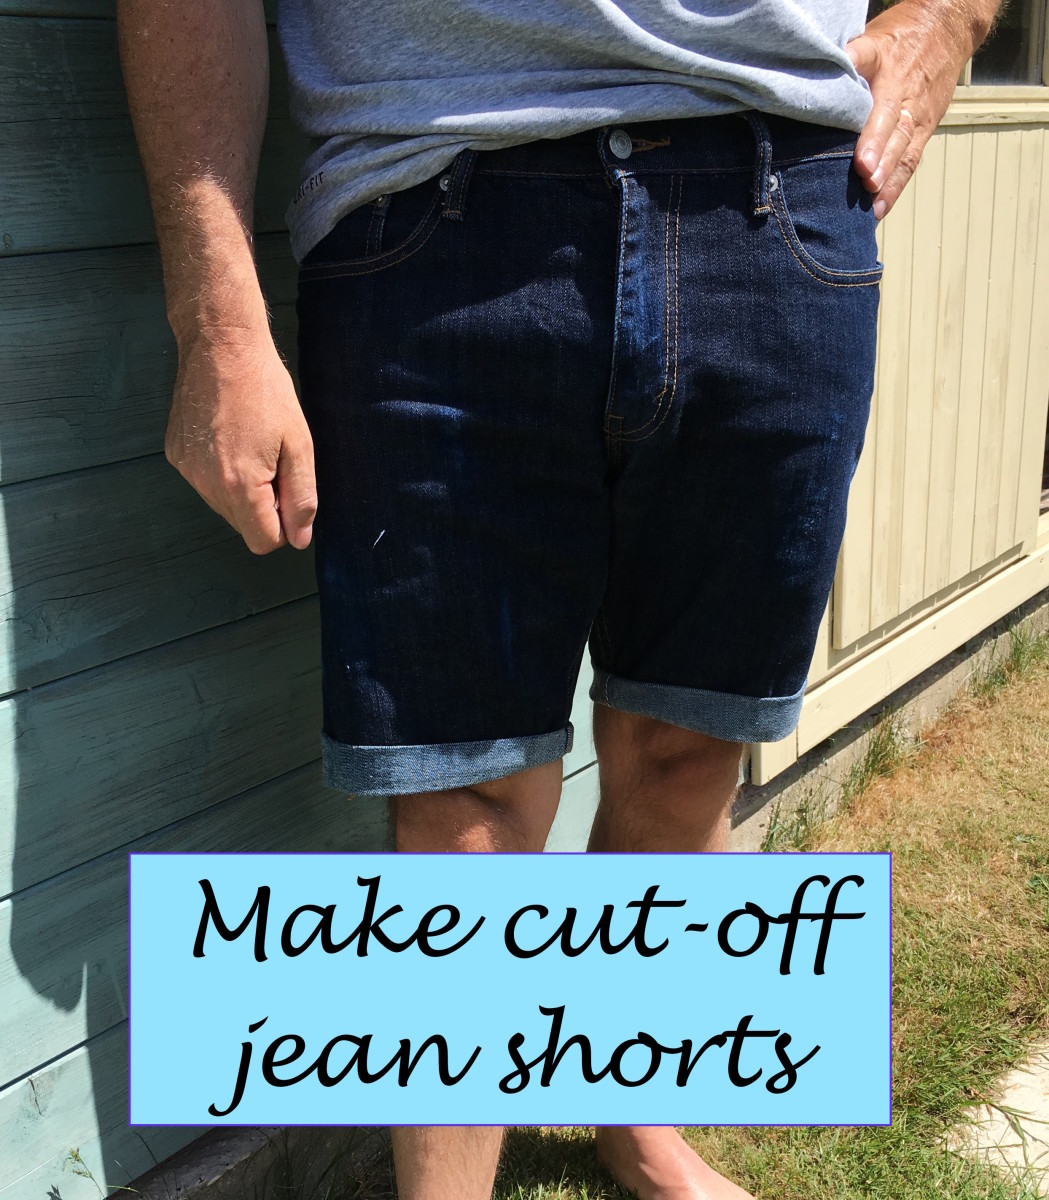 Make Your Own Cut Off Jean Shorts to Save Money